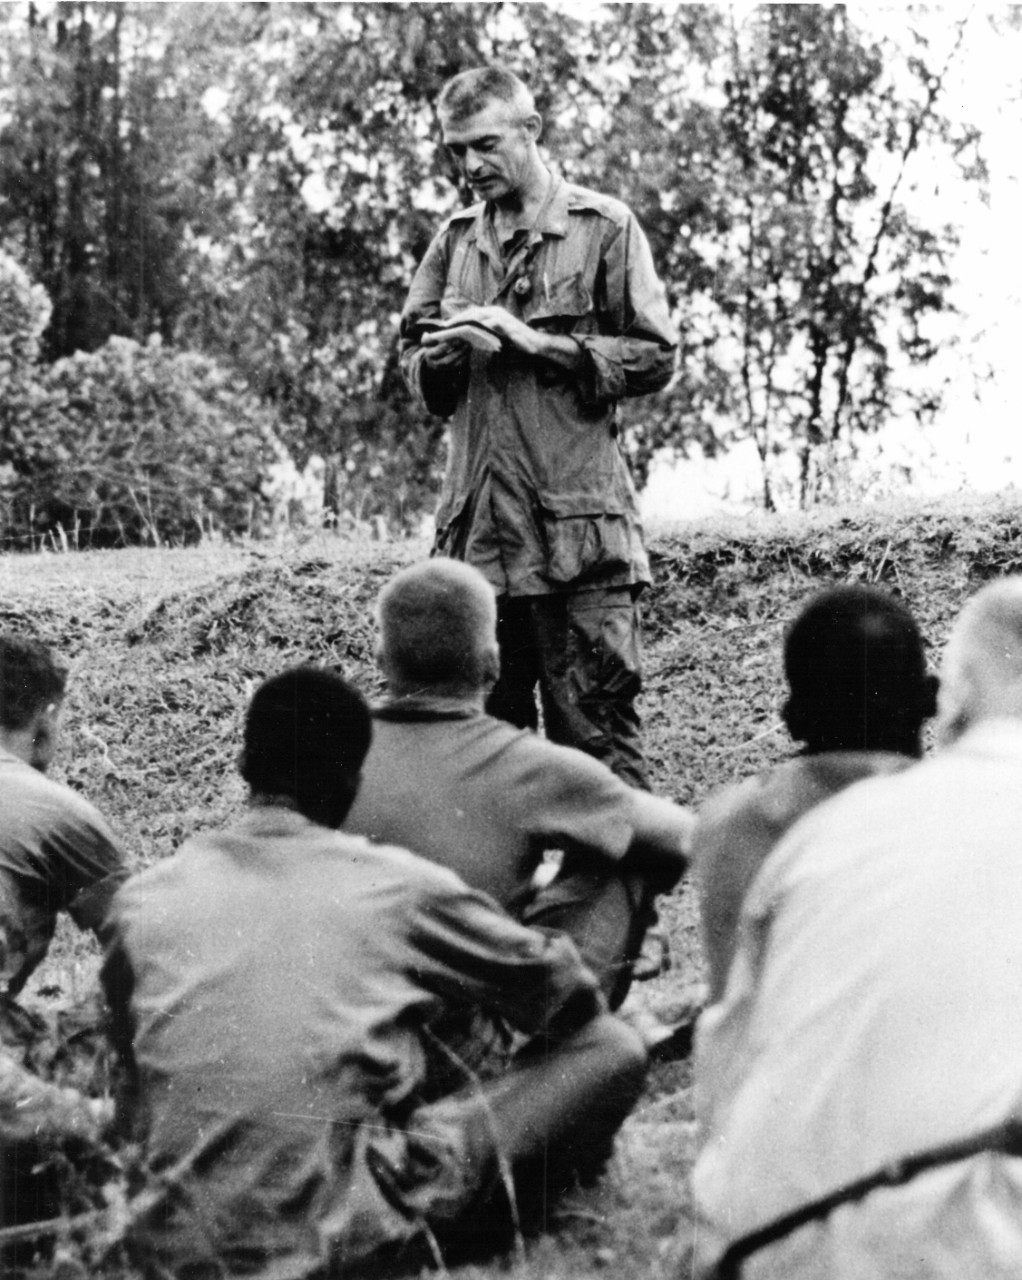 Father Vincent Capodanno ministers to the marines under his care while serving in Vietnam (Capodanno (DE-1093), Ship's History, Naval History and Heritage Command)